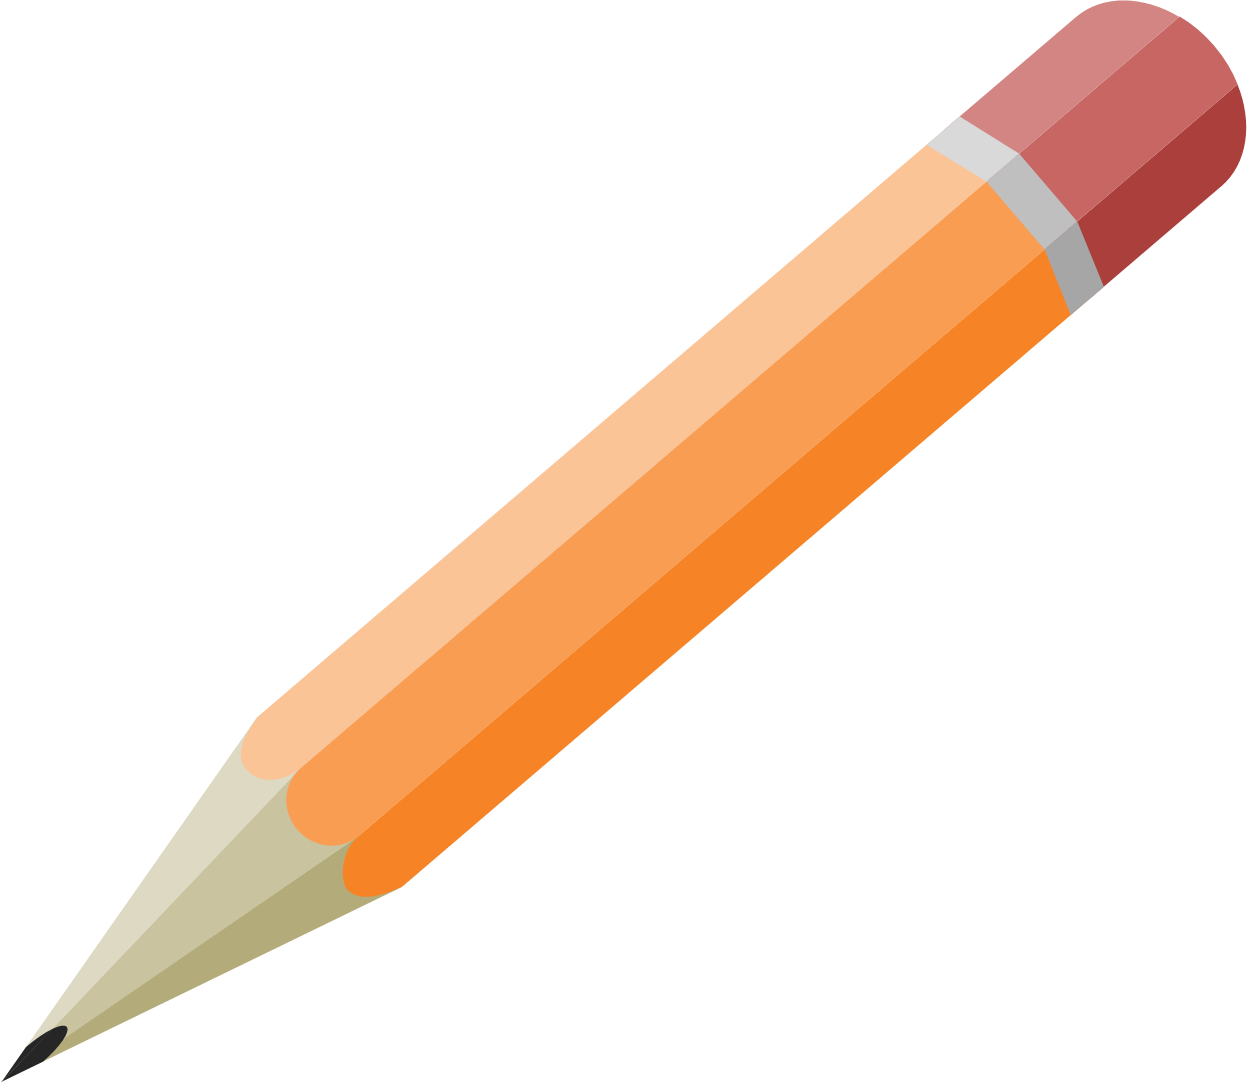 Drawing accessory pencil. Free powerpoint drawings building